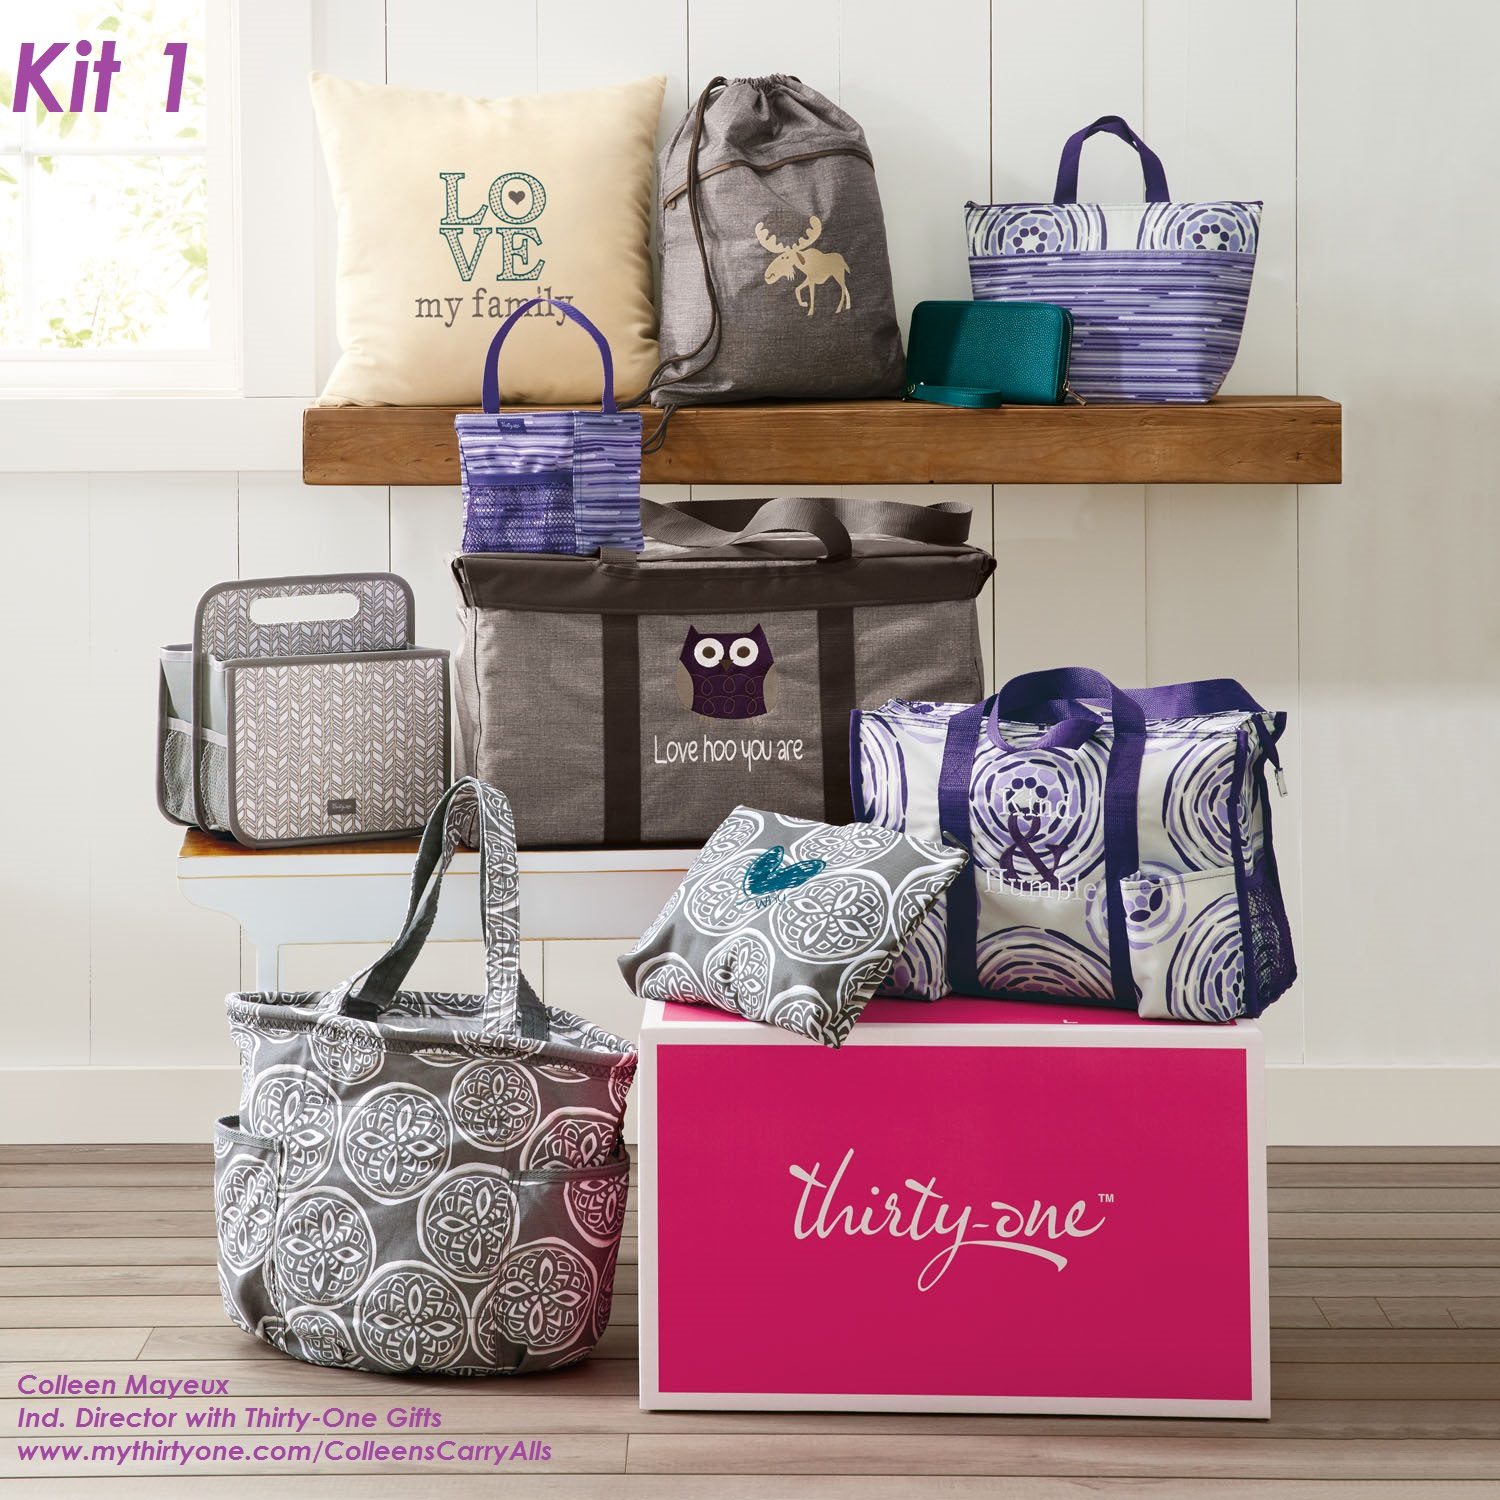 Join Thirty One Gifts Colleen Mayeux Ind Director With Thirty